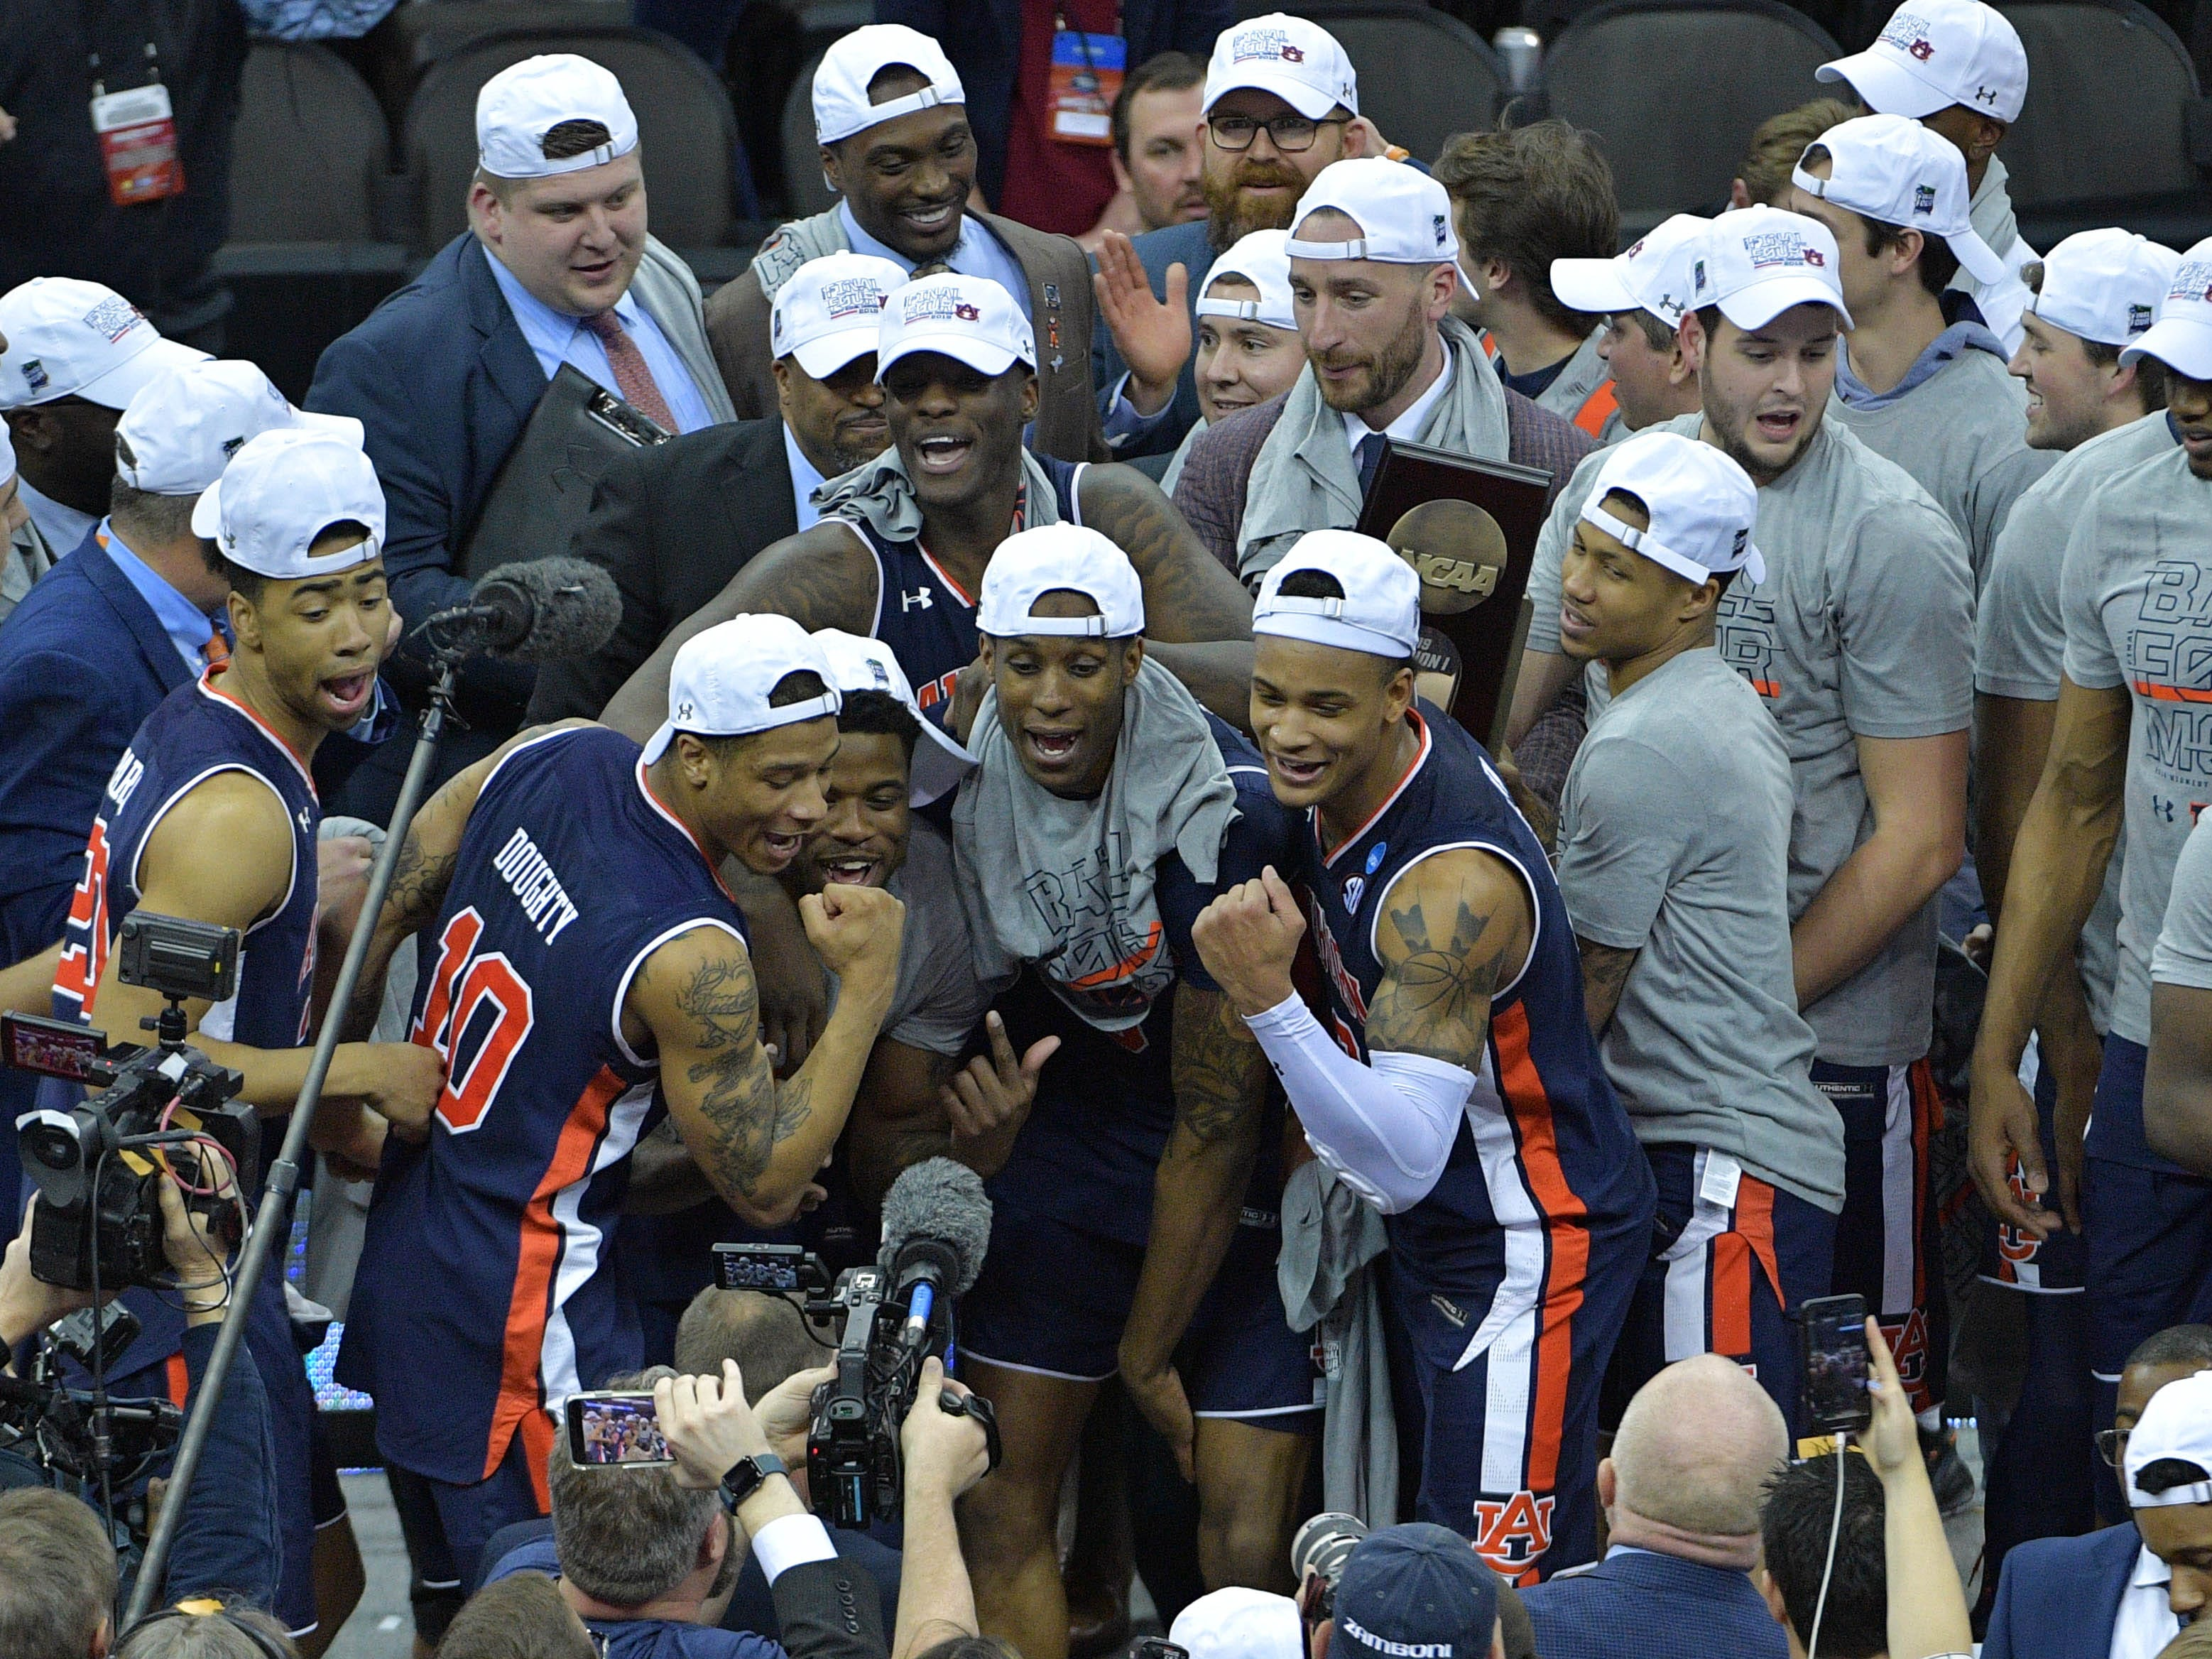 Auburn Tigers players celebrate after defeating the Kentucky Wildcats in the championship game of the midwest regional of the 2019 NCAA Tournament at Sprint Center on March 31, 2019, in Kansas City